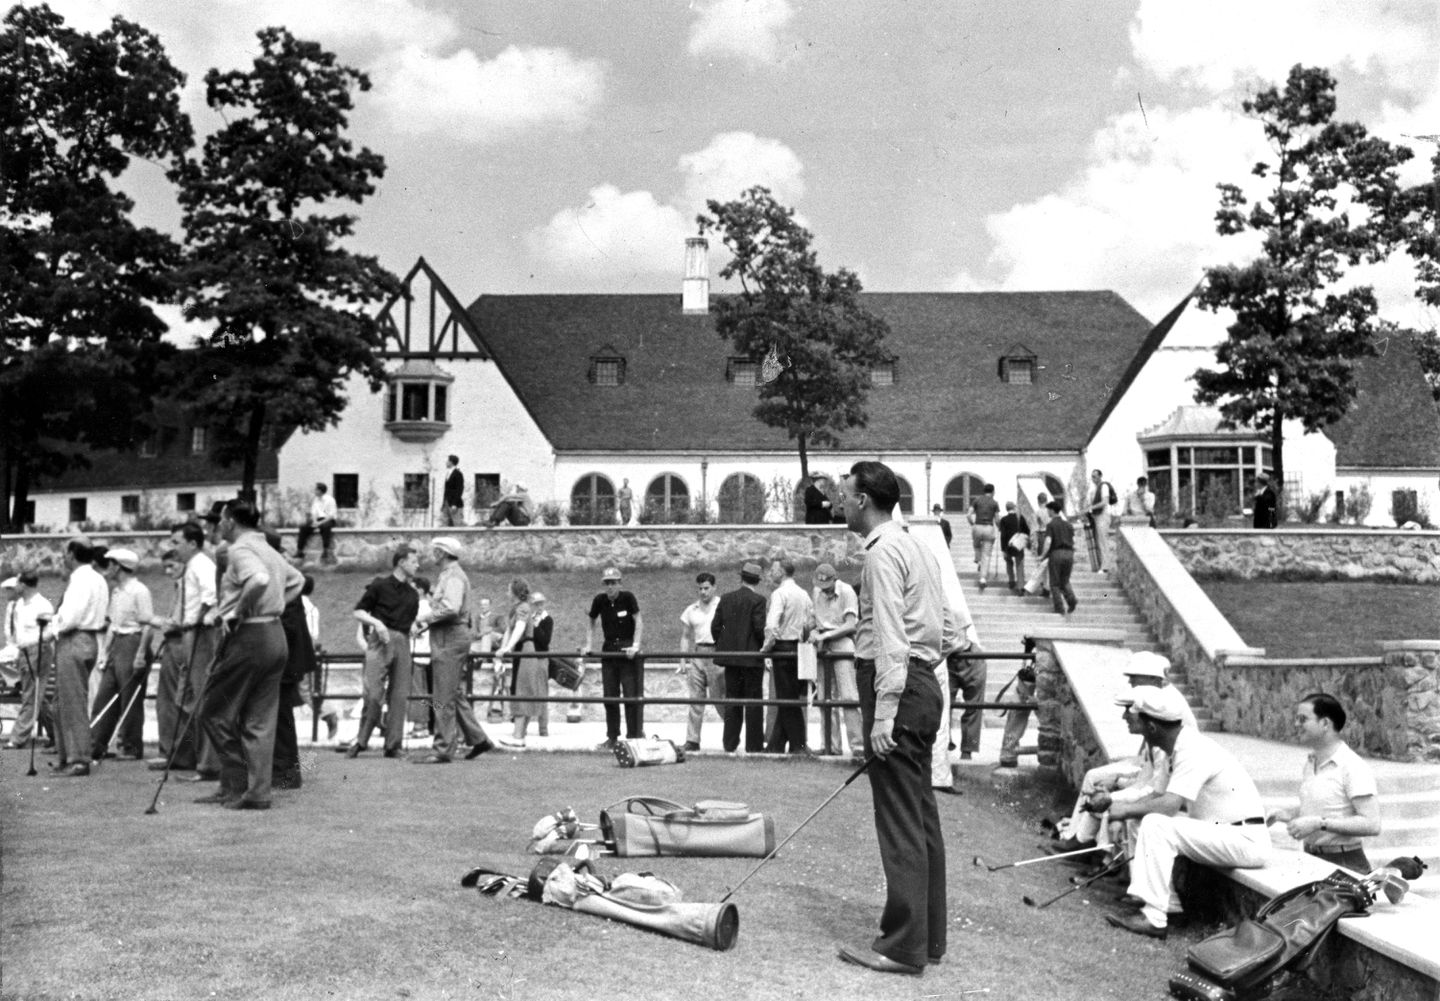 Golfers gathered at the first tee of Boston's newly opened $1 million municipal George Wright Golf Course and country club circa June 1938.